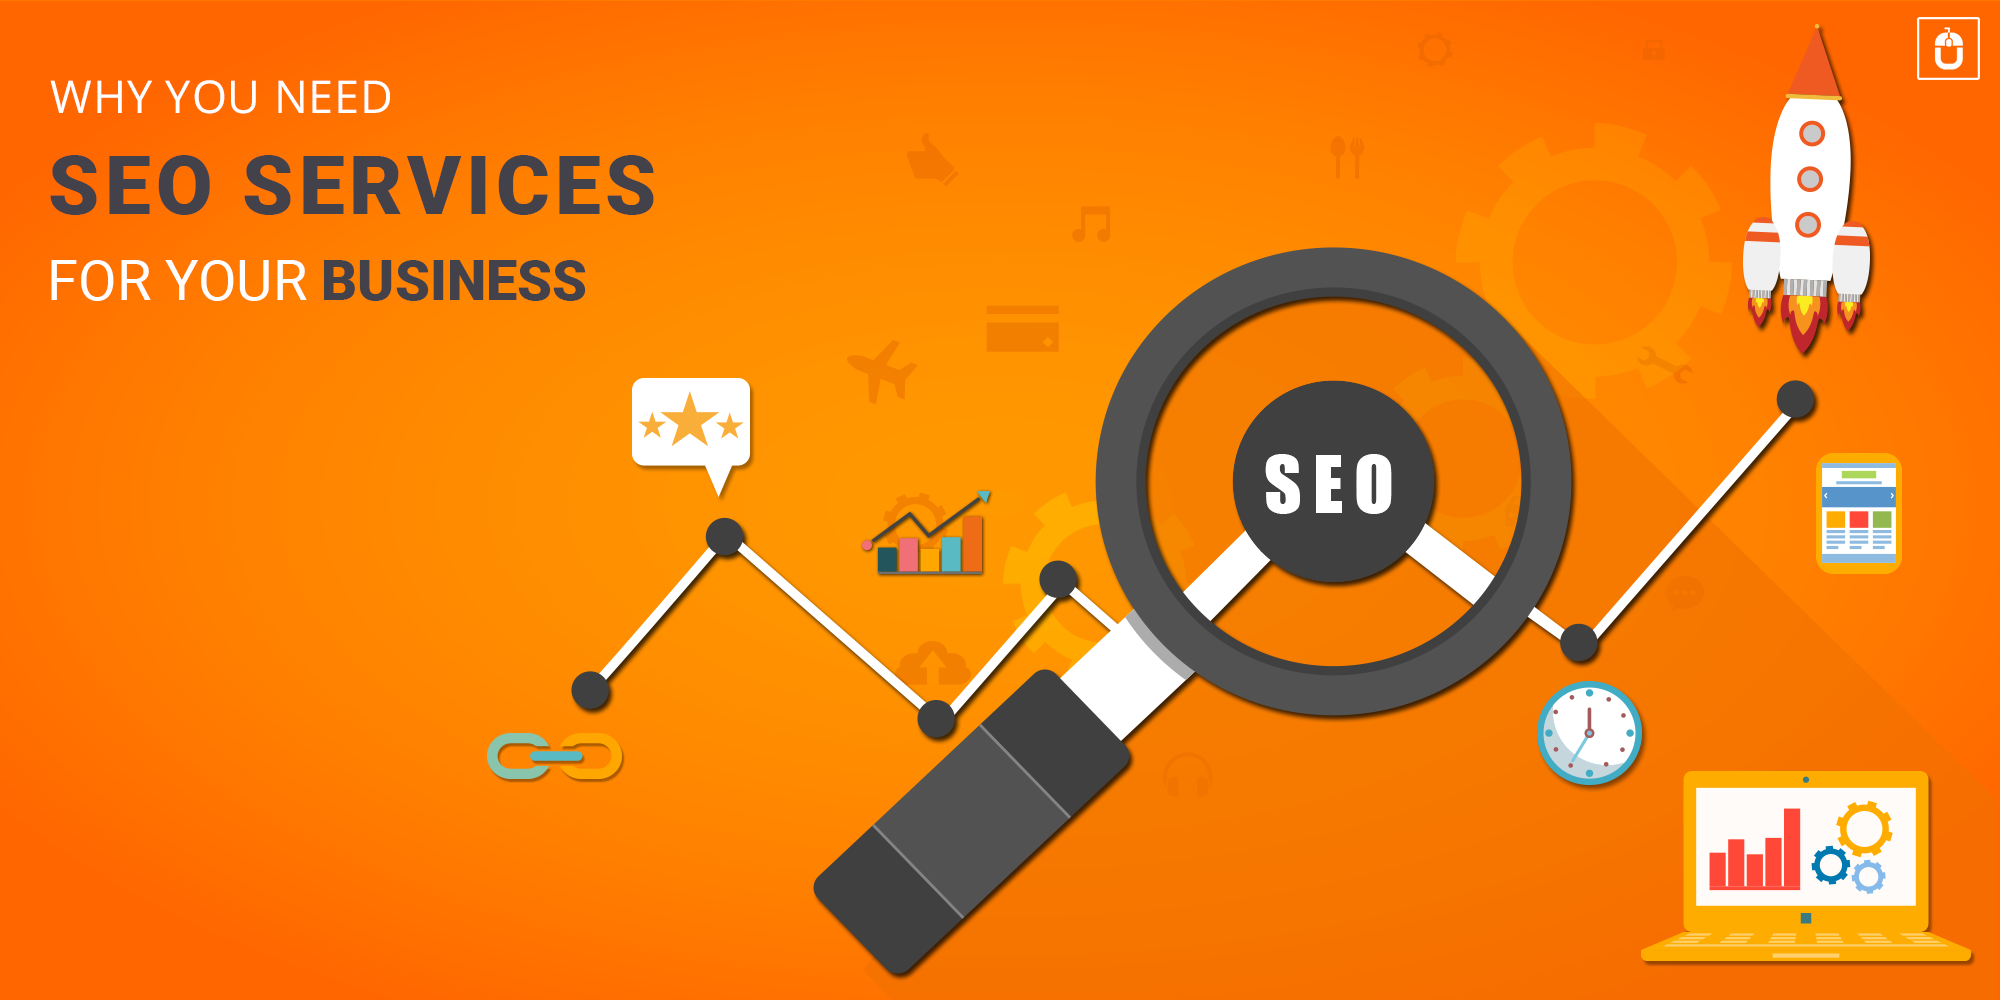 WHY YOU NEED SEO SERVICES FOR YOUR BUSINESS